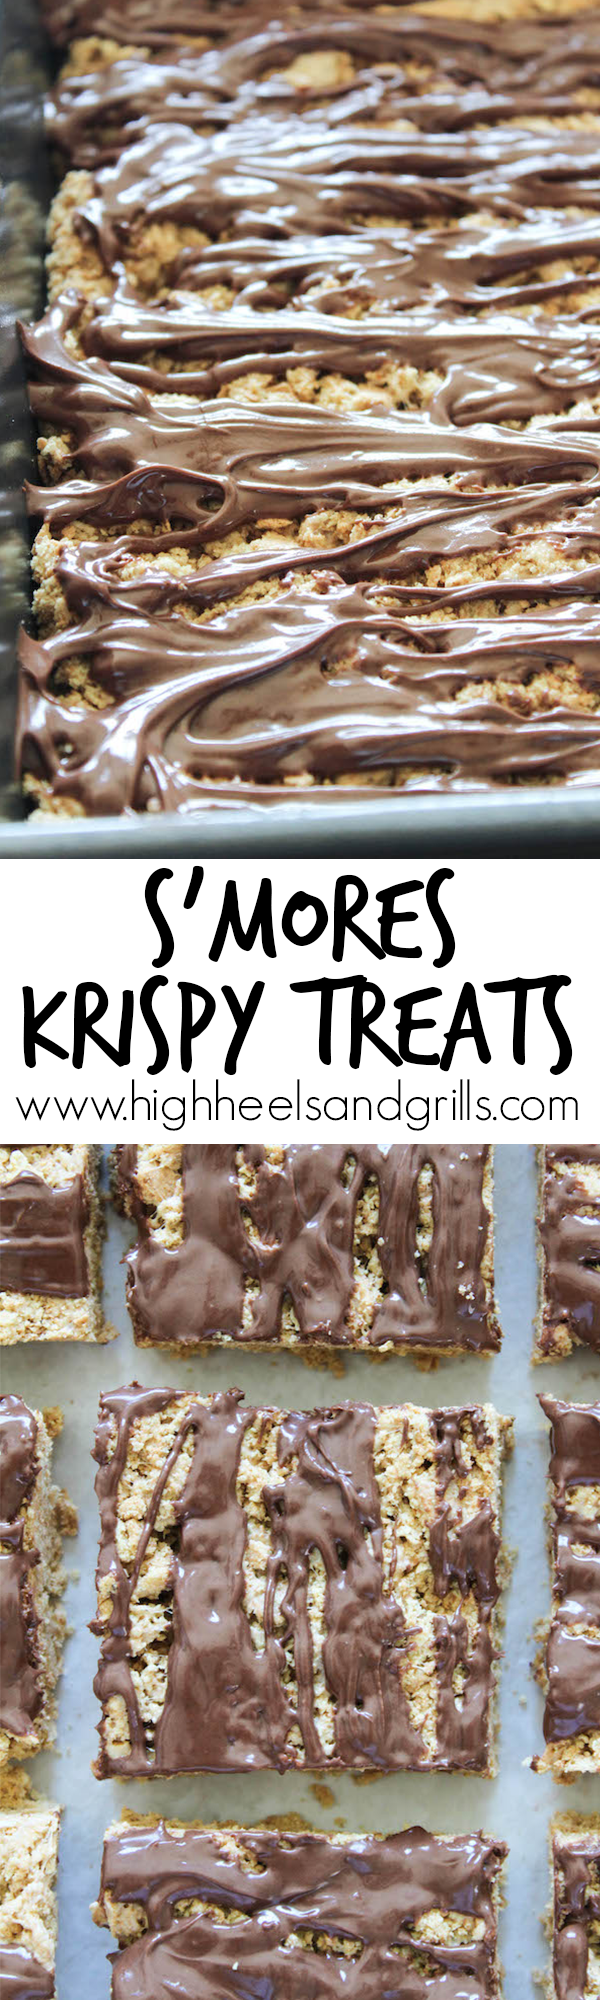 Smores Krispy Treats Recipe - Made from graham cracker crumbs instead of cereal. They taste just like a smore! Such a fun and easy, no bake, summer treat. https://www.highheelsandgrills.com/smores-krispy-treats/